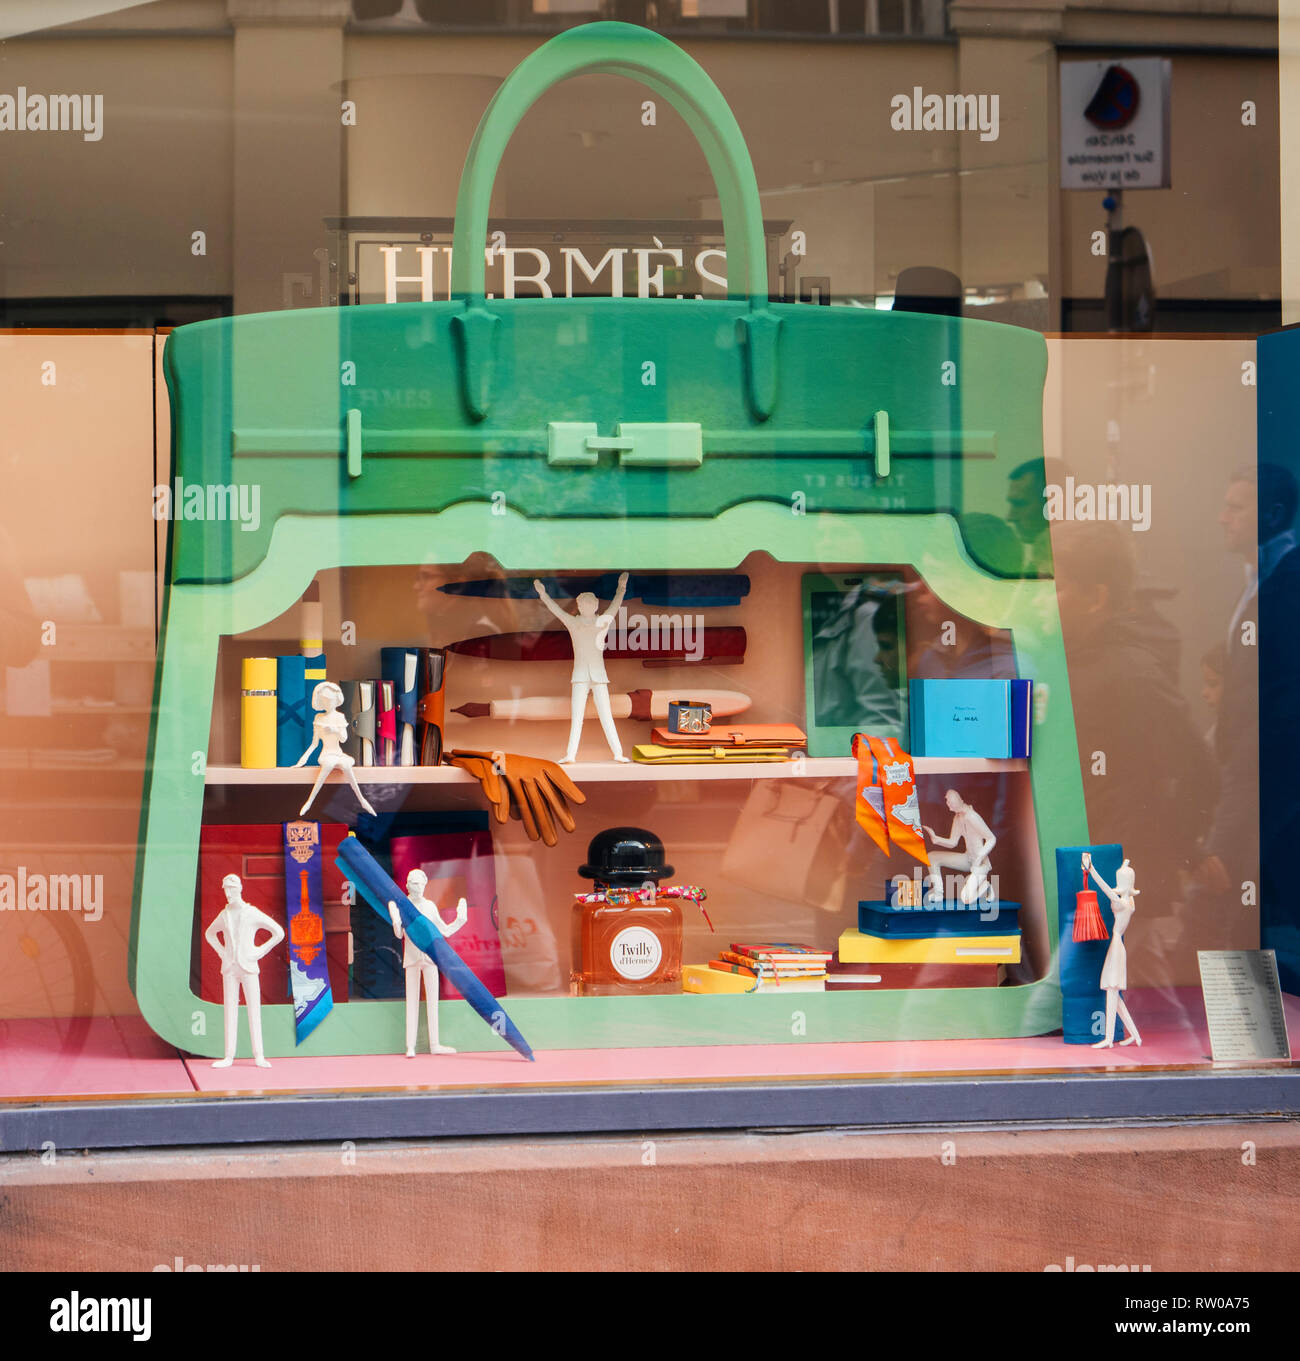 Images Bag Hermes Photosamp; Images Photosamp; Hermes Bag Alamy rWCxoeEQdB